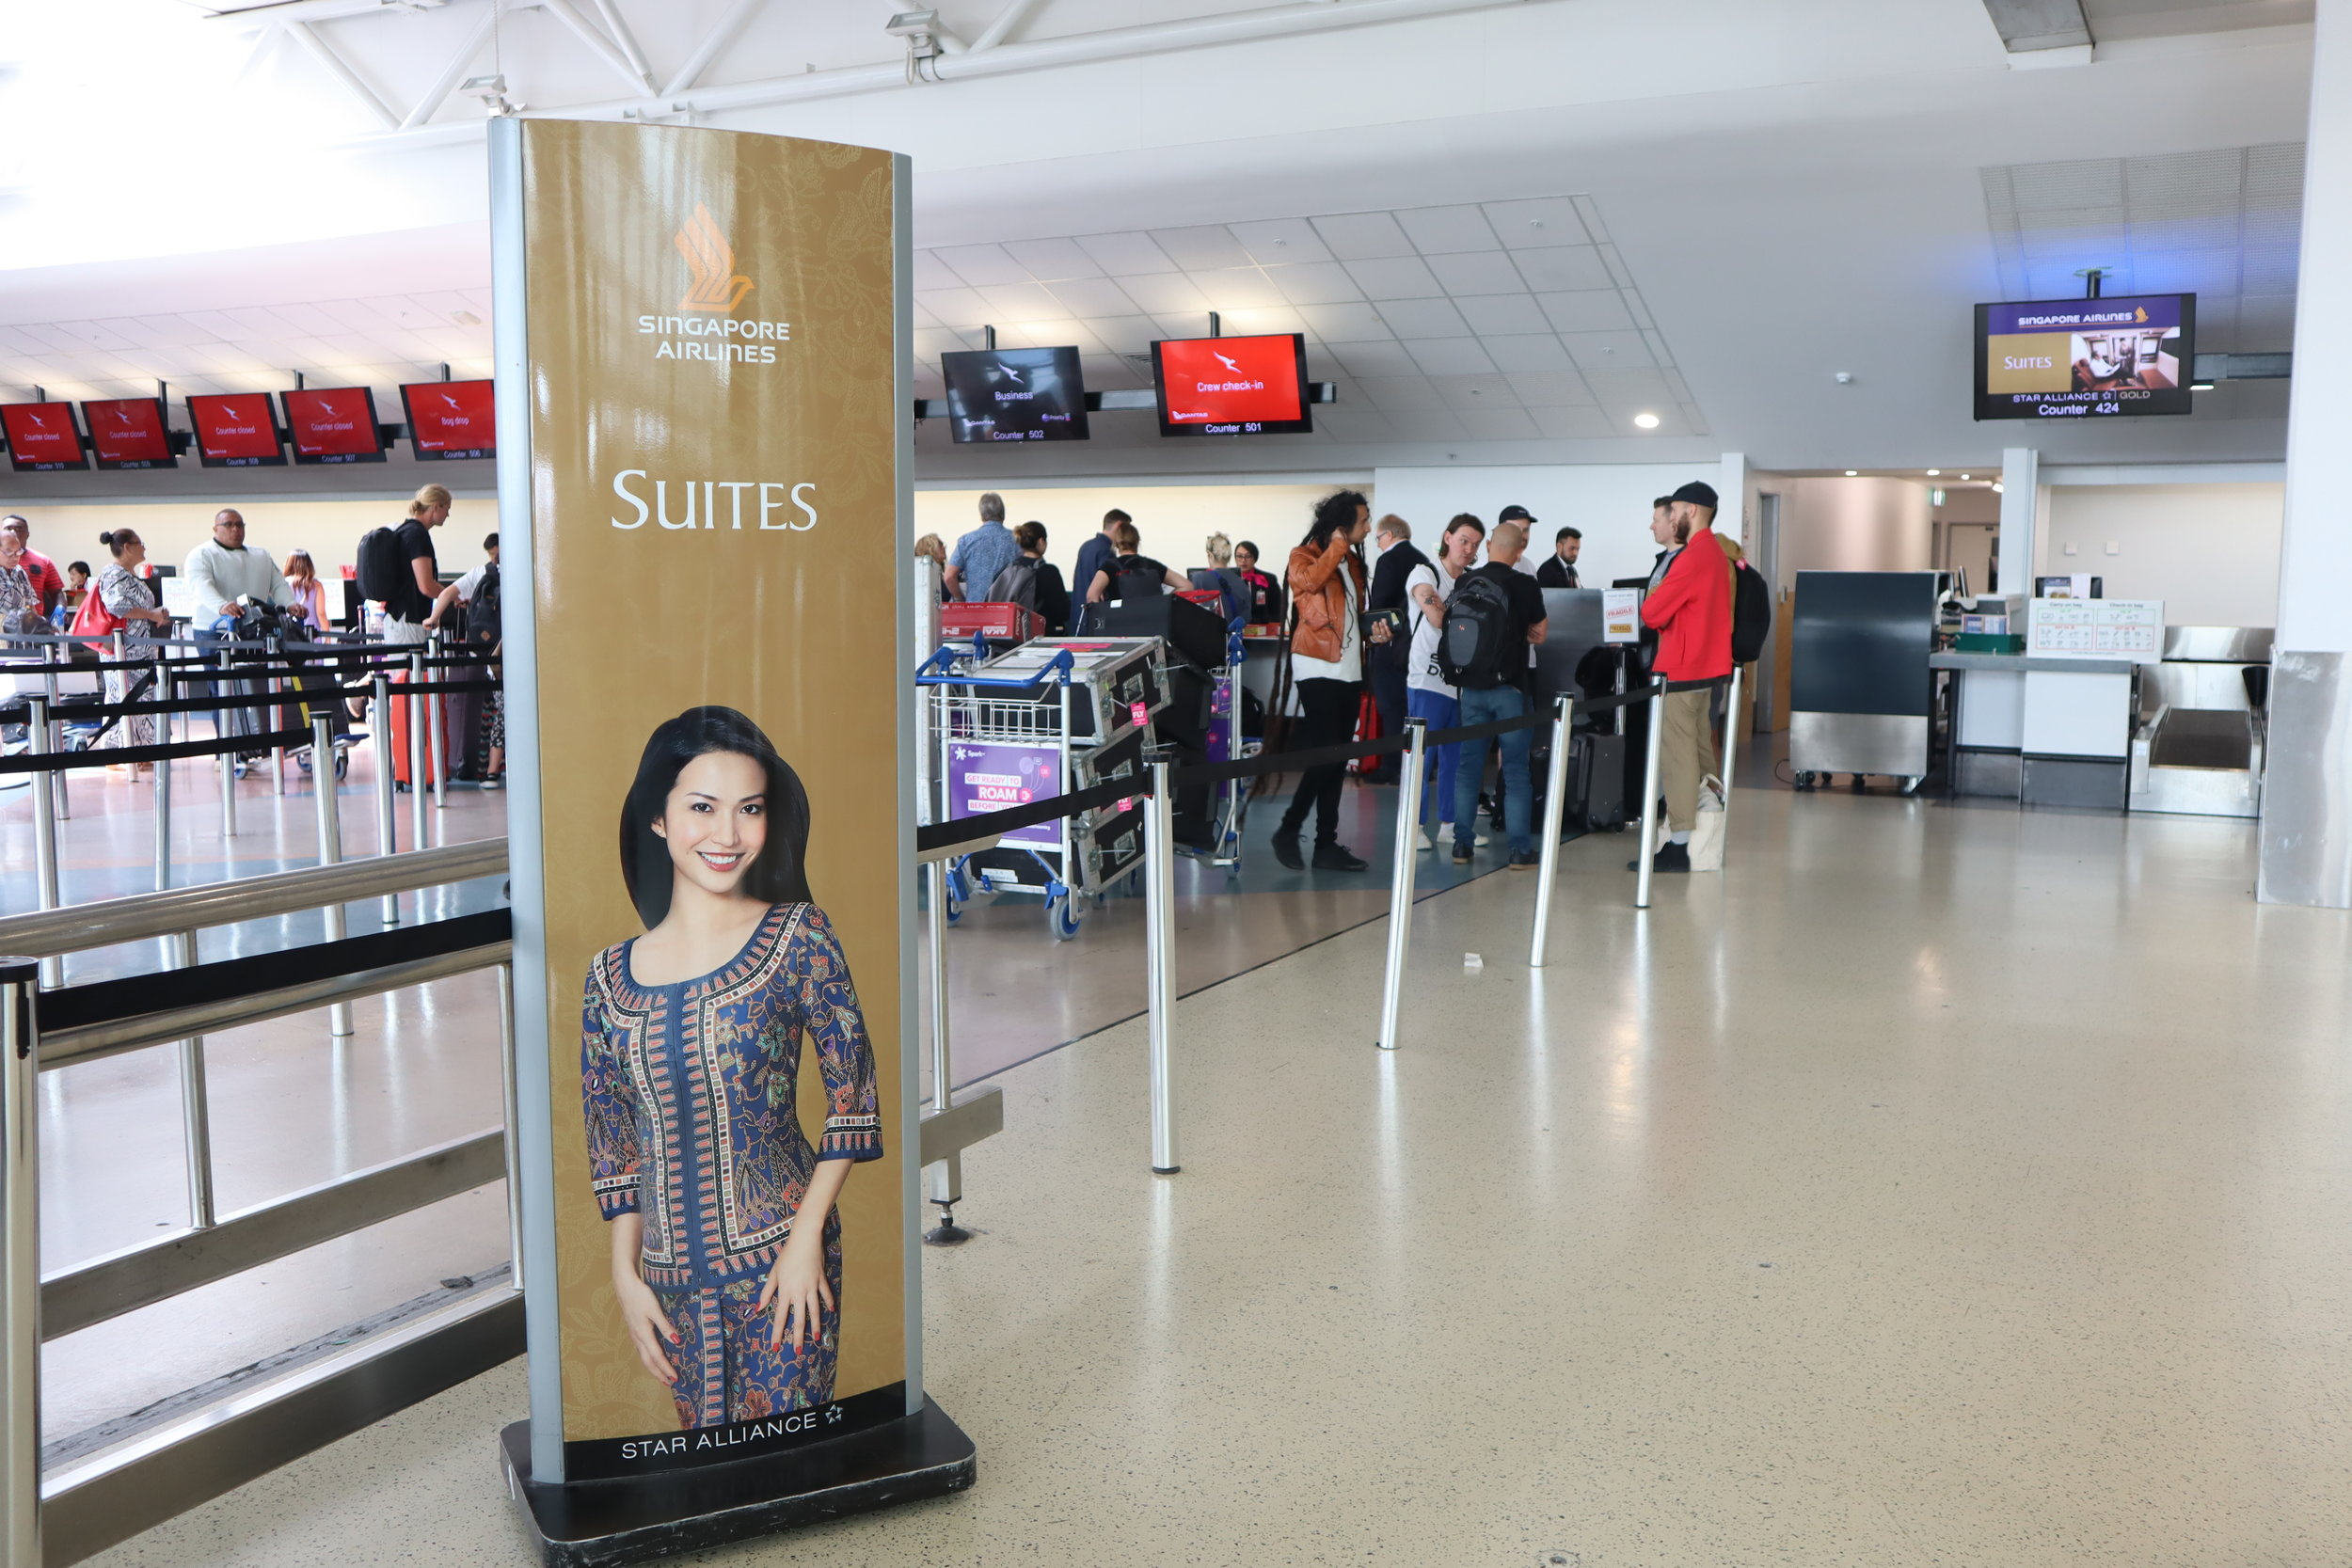 Singapore Airlines Suites Class – Check-in